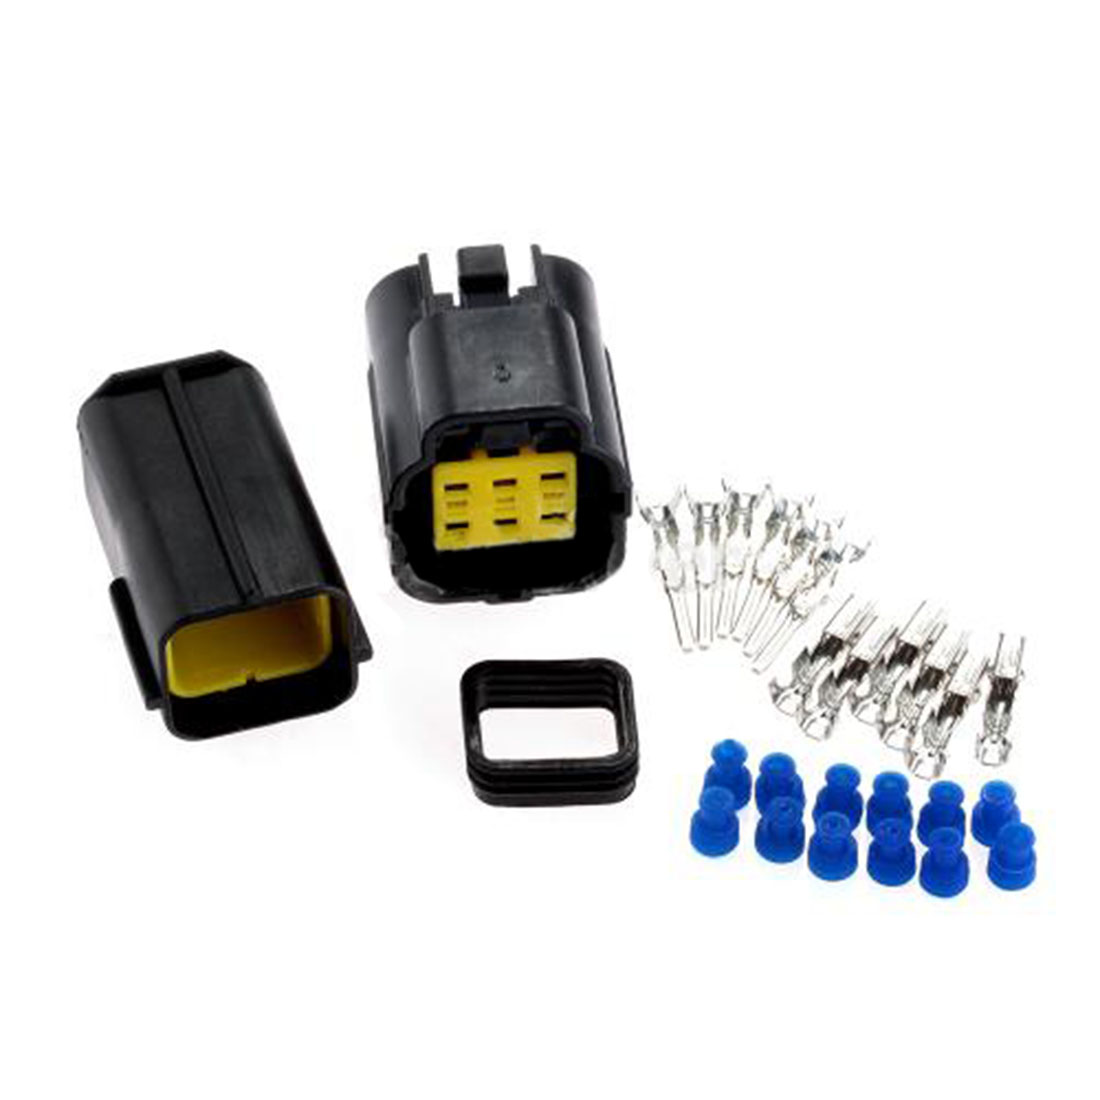 Top Quality 1 Kit 6 Pin Way Waterproof Wire Connector Plug Car Auto Sealed Electrical Set